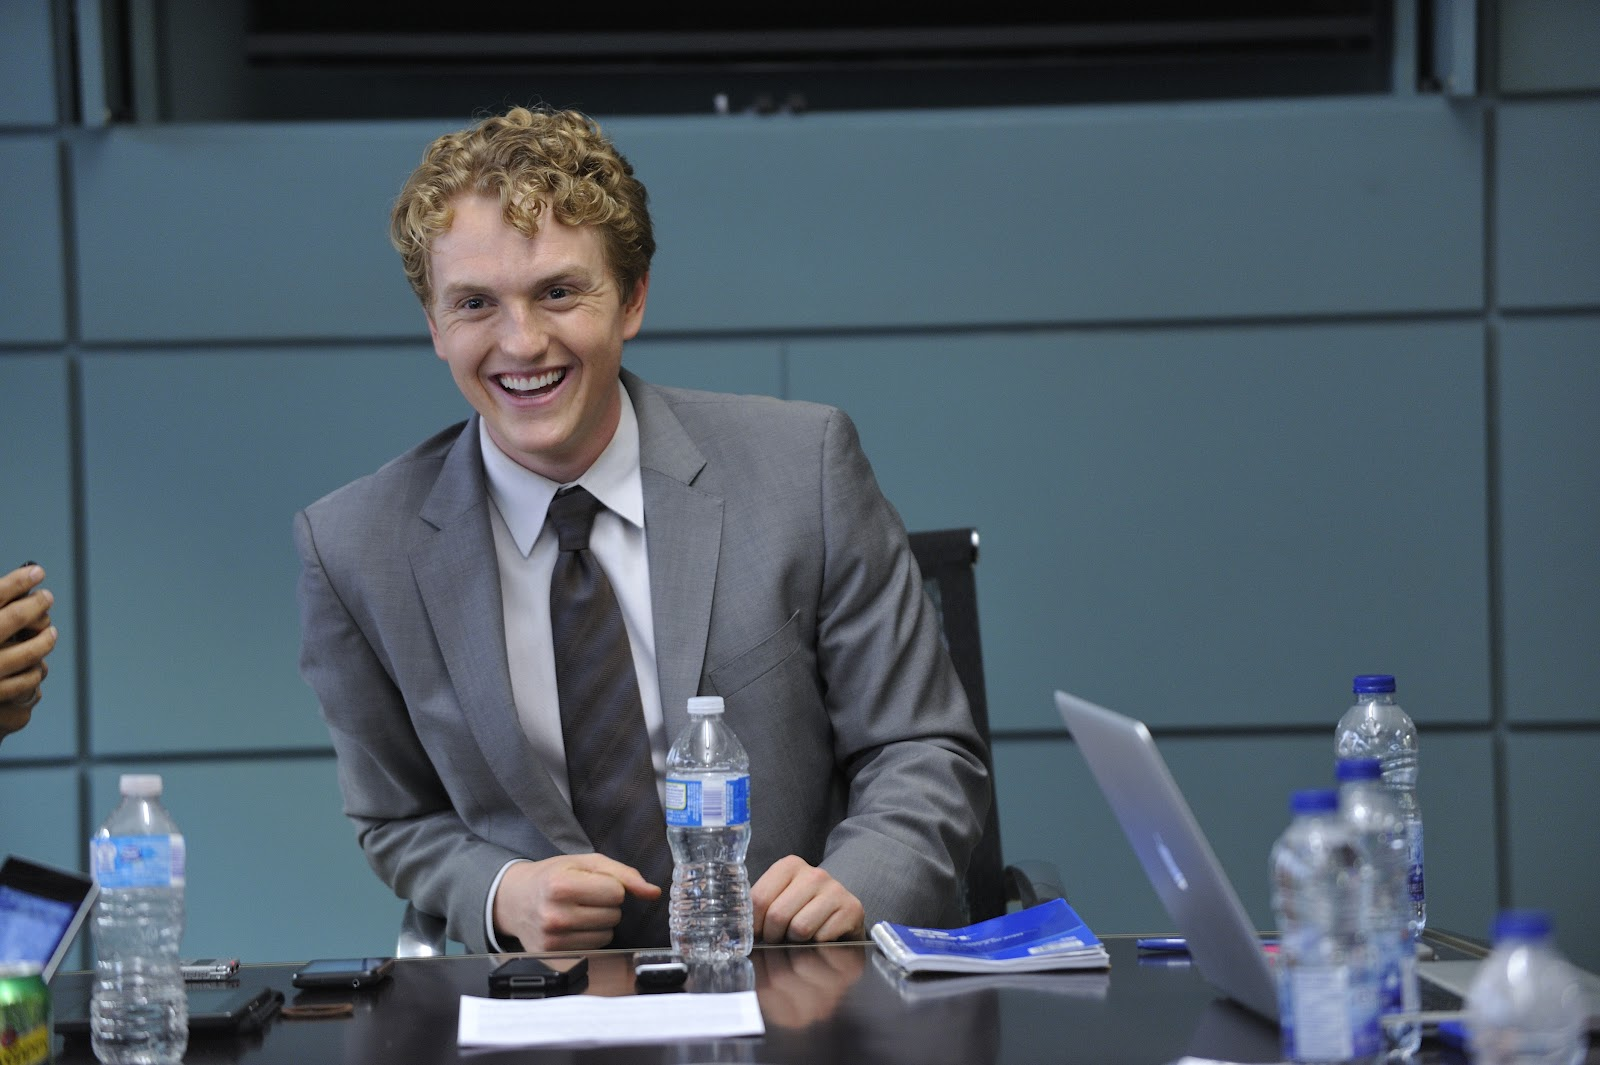 Jerome Wetzel TV: An Interview With Suits' Max Topplin